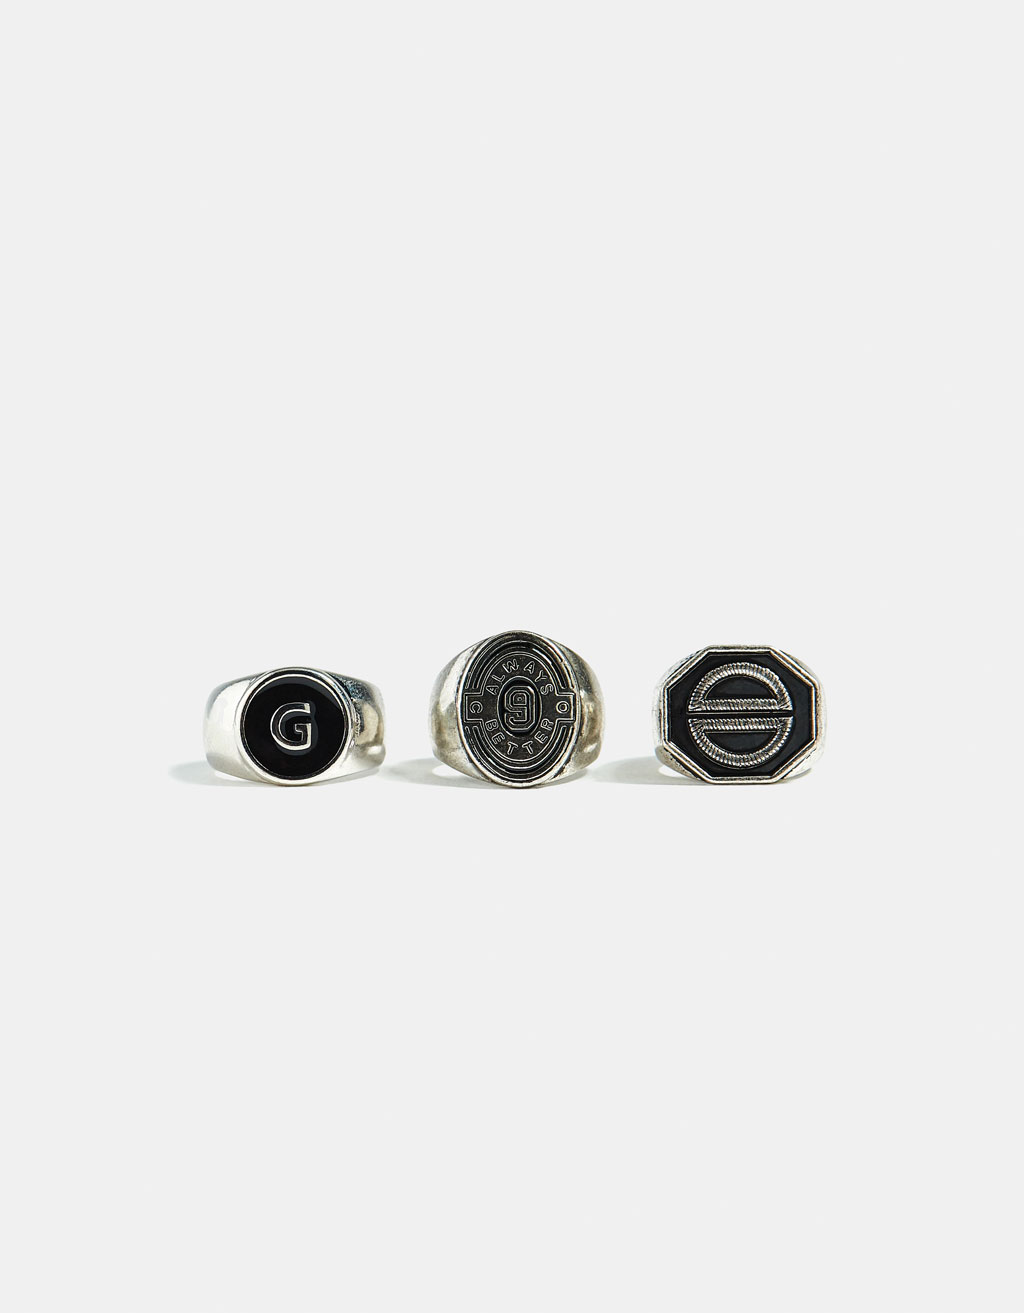 Set of 3 signet rings